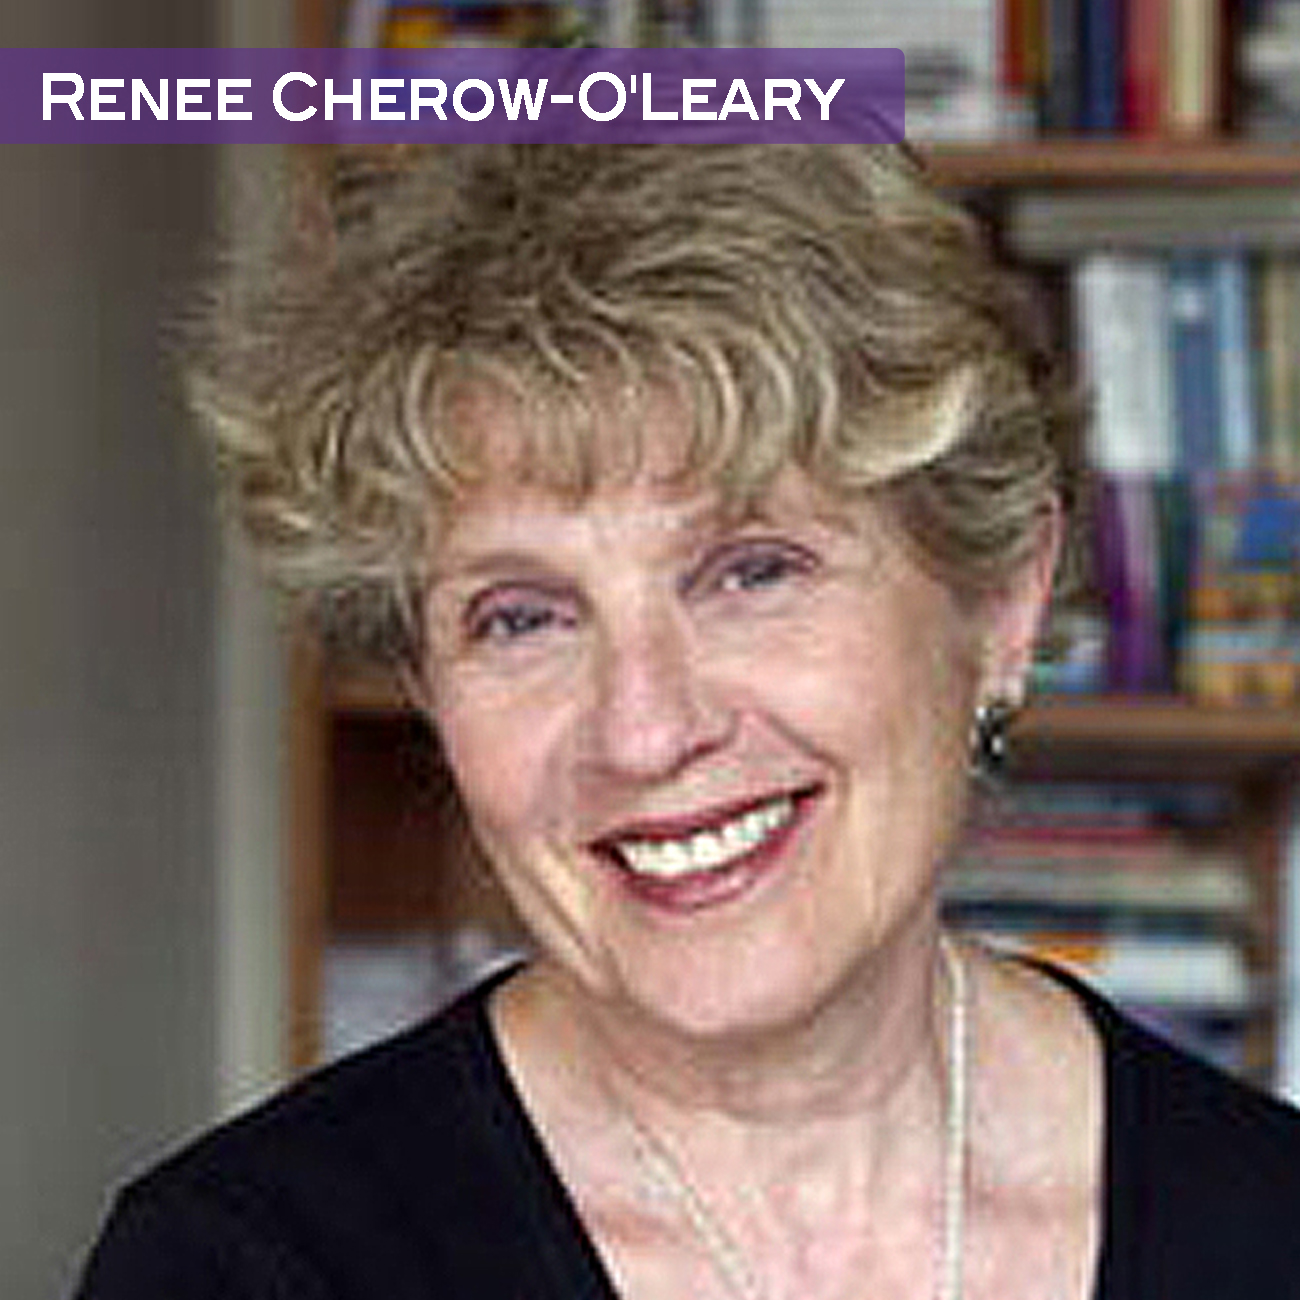 Renee Cherow-O'Leary, Ph.D., is the President and Founder of Education for the 21st Century, a consulting group in New York City, that develops educational materials and programs for schools, non-profit organizations and corporations that work in the education sector. The programs, primarily for children, parents and teachers, include assessing how best to achieve educational goals for programs in a variety of platforms--print, television, games and online among them. She was a Director of Research at Sesame Street and has worked with many children's media companies including Disney, Sprout, and PBS. She also works on human rights education for groups such as the United Nations Alliance of Civilizations (UNAOC), the U.S. Institute for Peace, Upstander Productions and the Center for Teaching Social Responsibility, Renee serves on several educational advisory boards including those of the Brooklyn Academy of Music and the Museum of the Moving Image. She is former professor of English Education at Teachers College, Columbia University with expertise in cultural and media studies and media literacy.